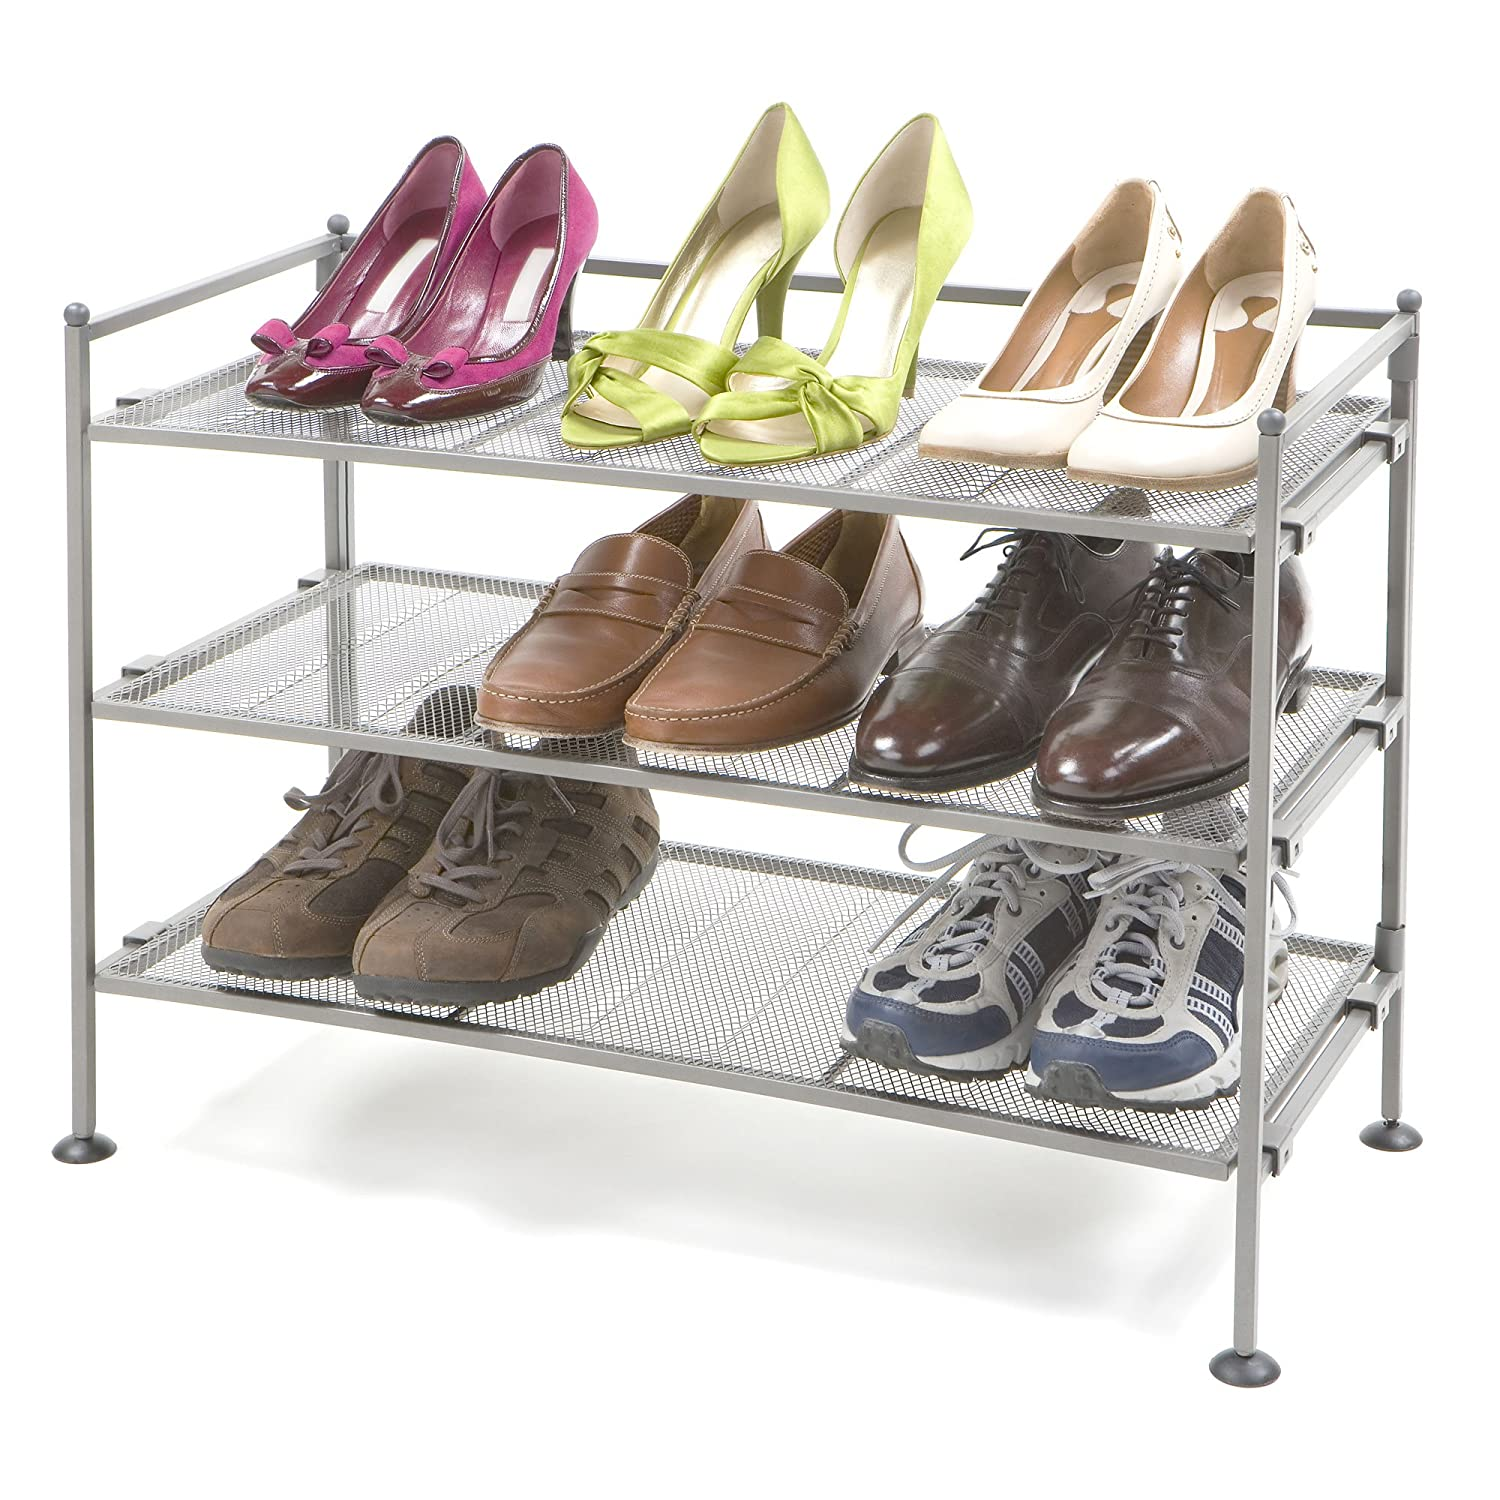 Top 10 Best Shoe Rack Organizers Reviews� 2019-2020